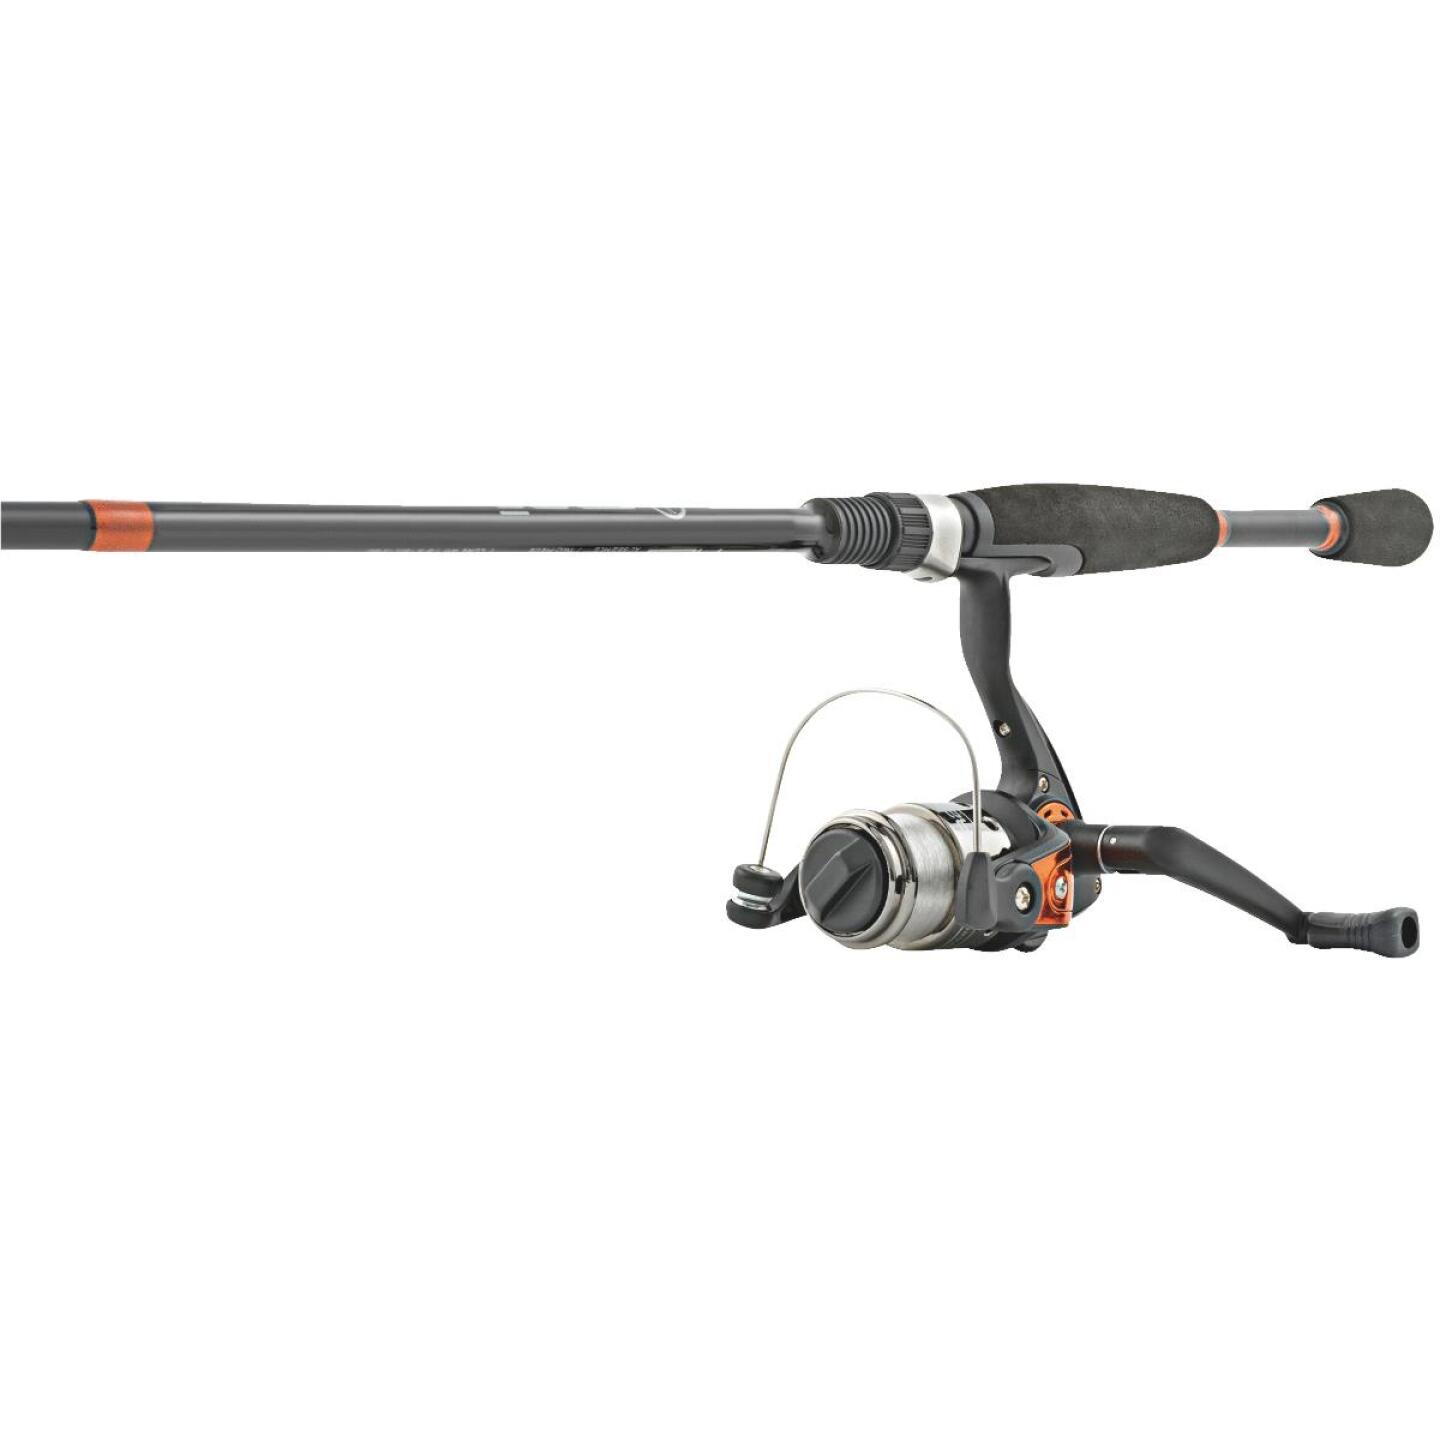 SouthBend Ready 2 Fish All Species 5 Ft. Fiberglass Fishing Rod & Spinning Reel Combo Image 3